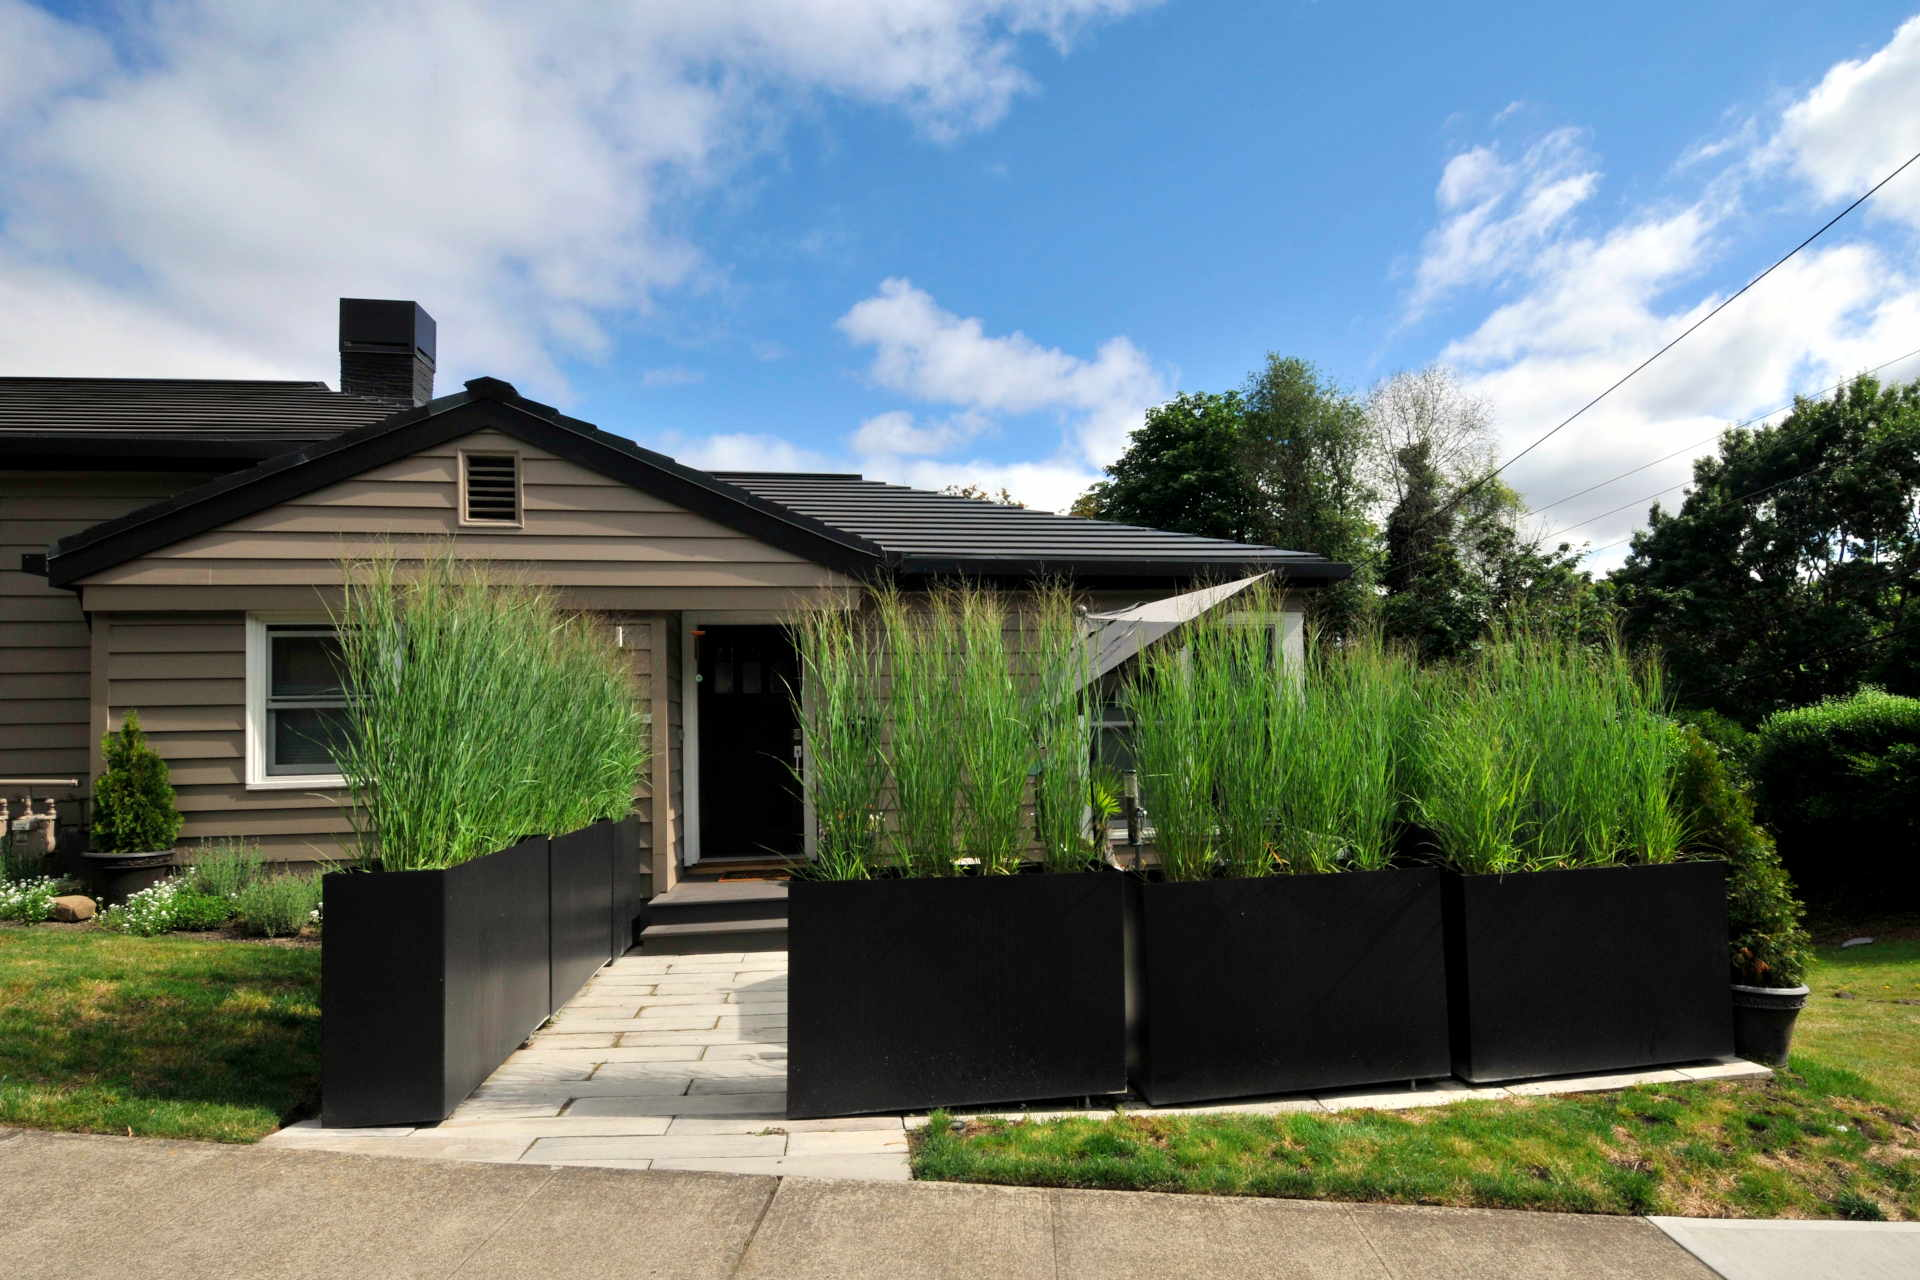 Big Metal Planters powder coated steel can define an outdoor space